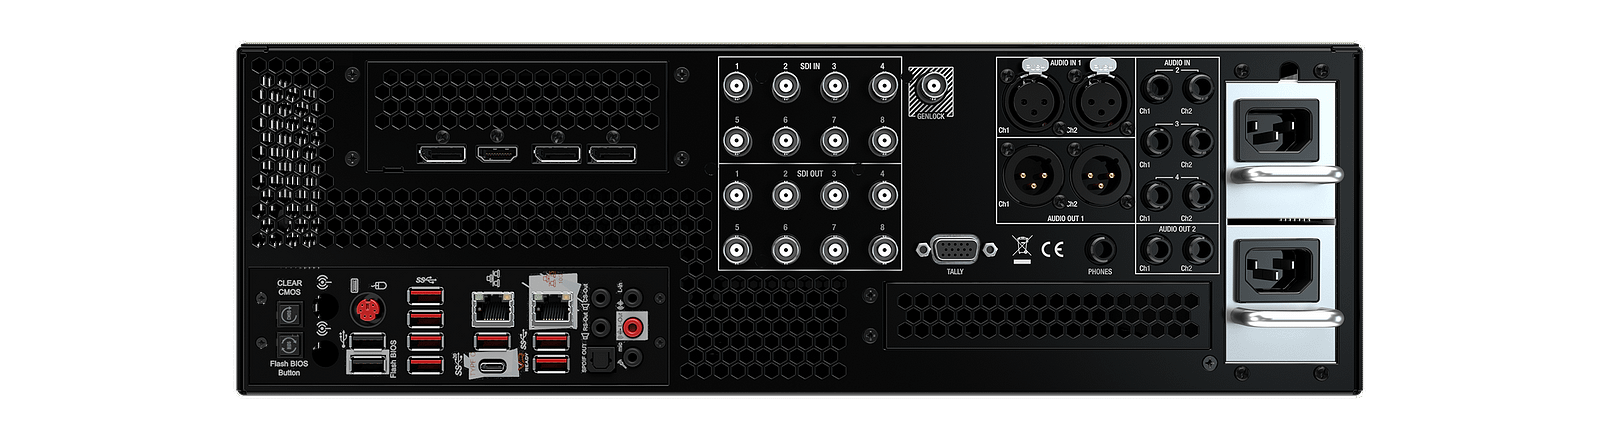 TriCaster 2 Elite Rear Connections - Web